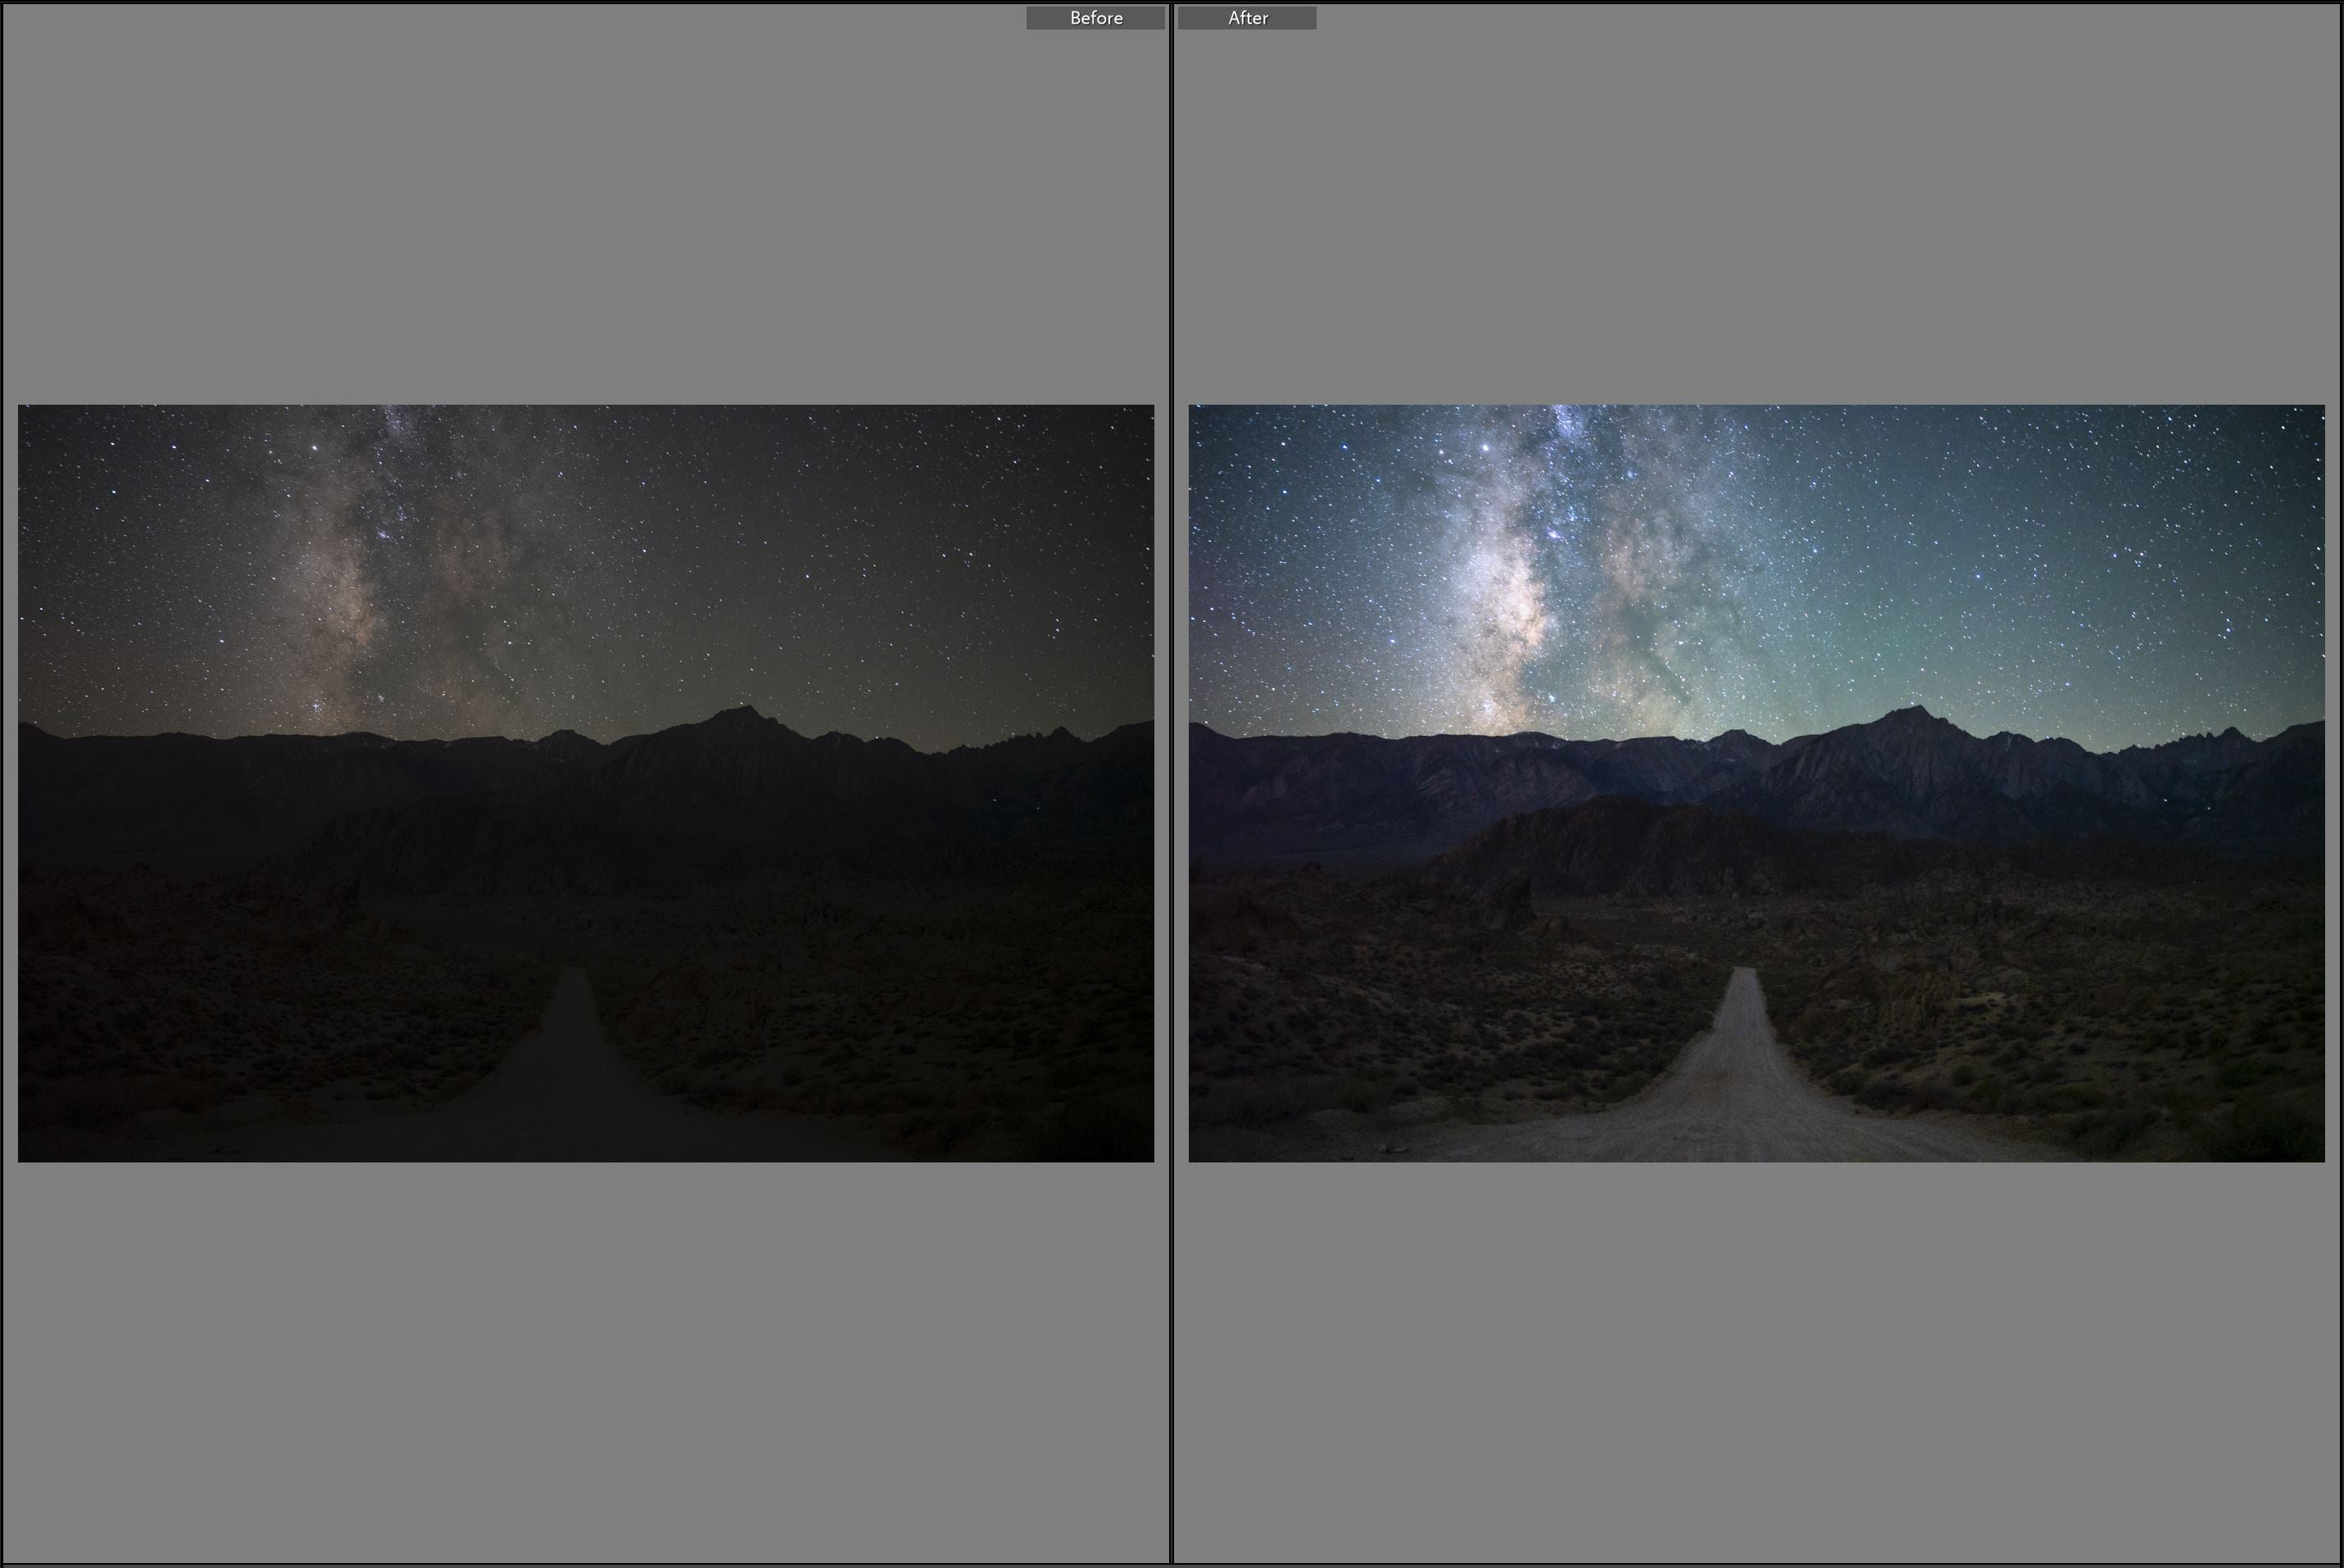 Galactic View - Astrophotography Presets for Lightroom